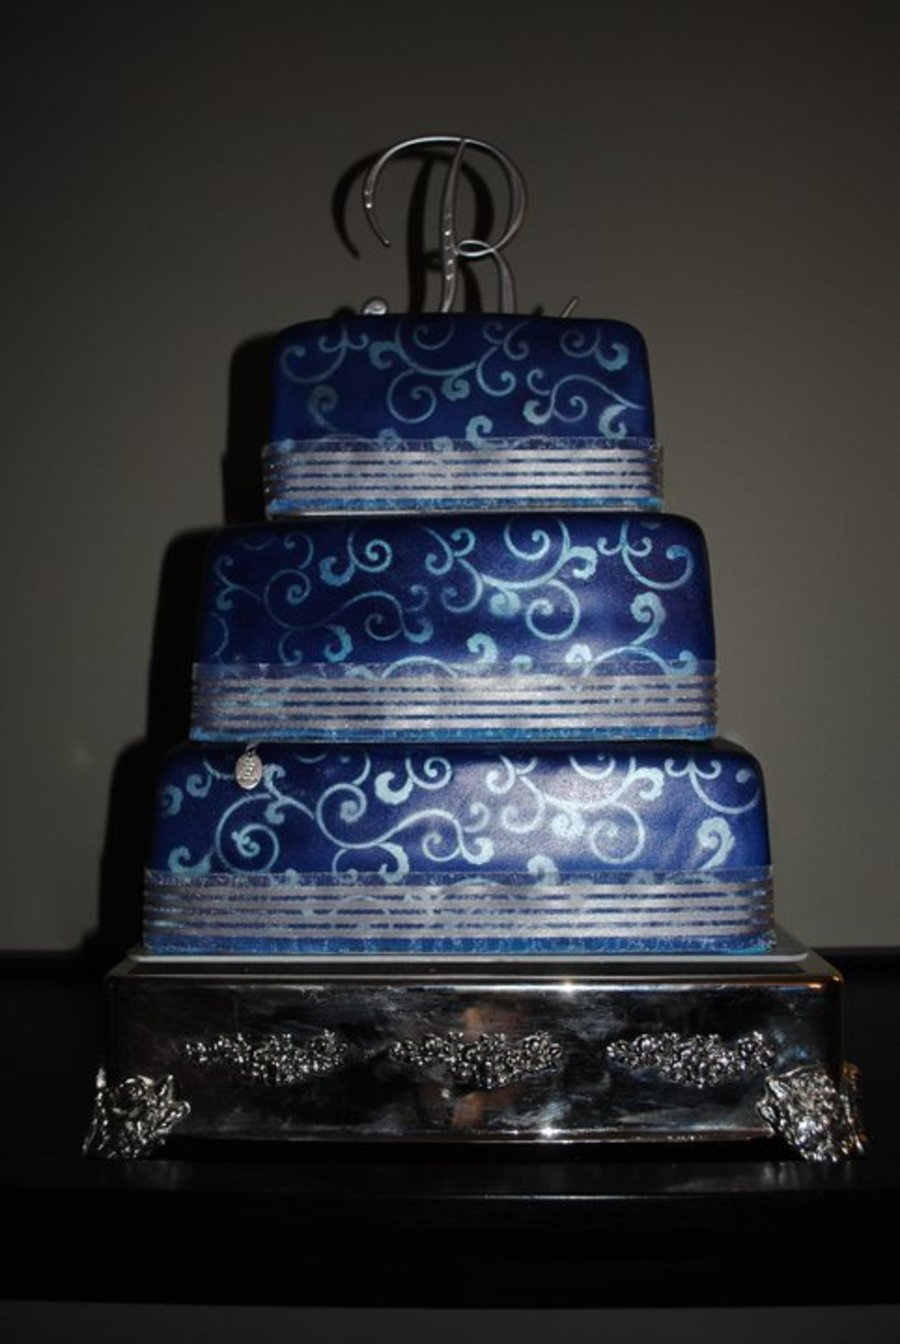 Royal Blue Fondant Cake With Silver Swirls on Cake Central